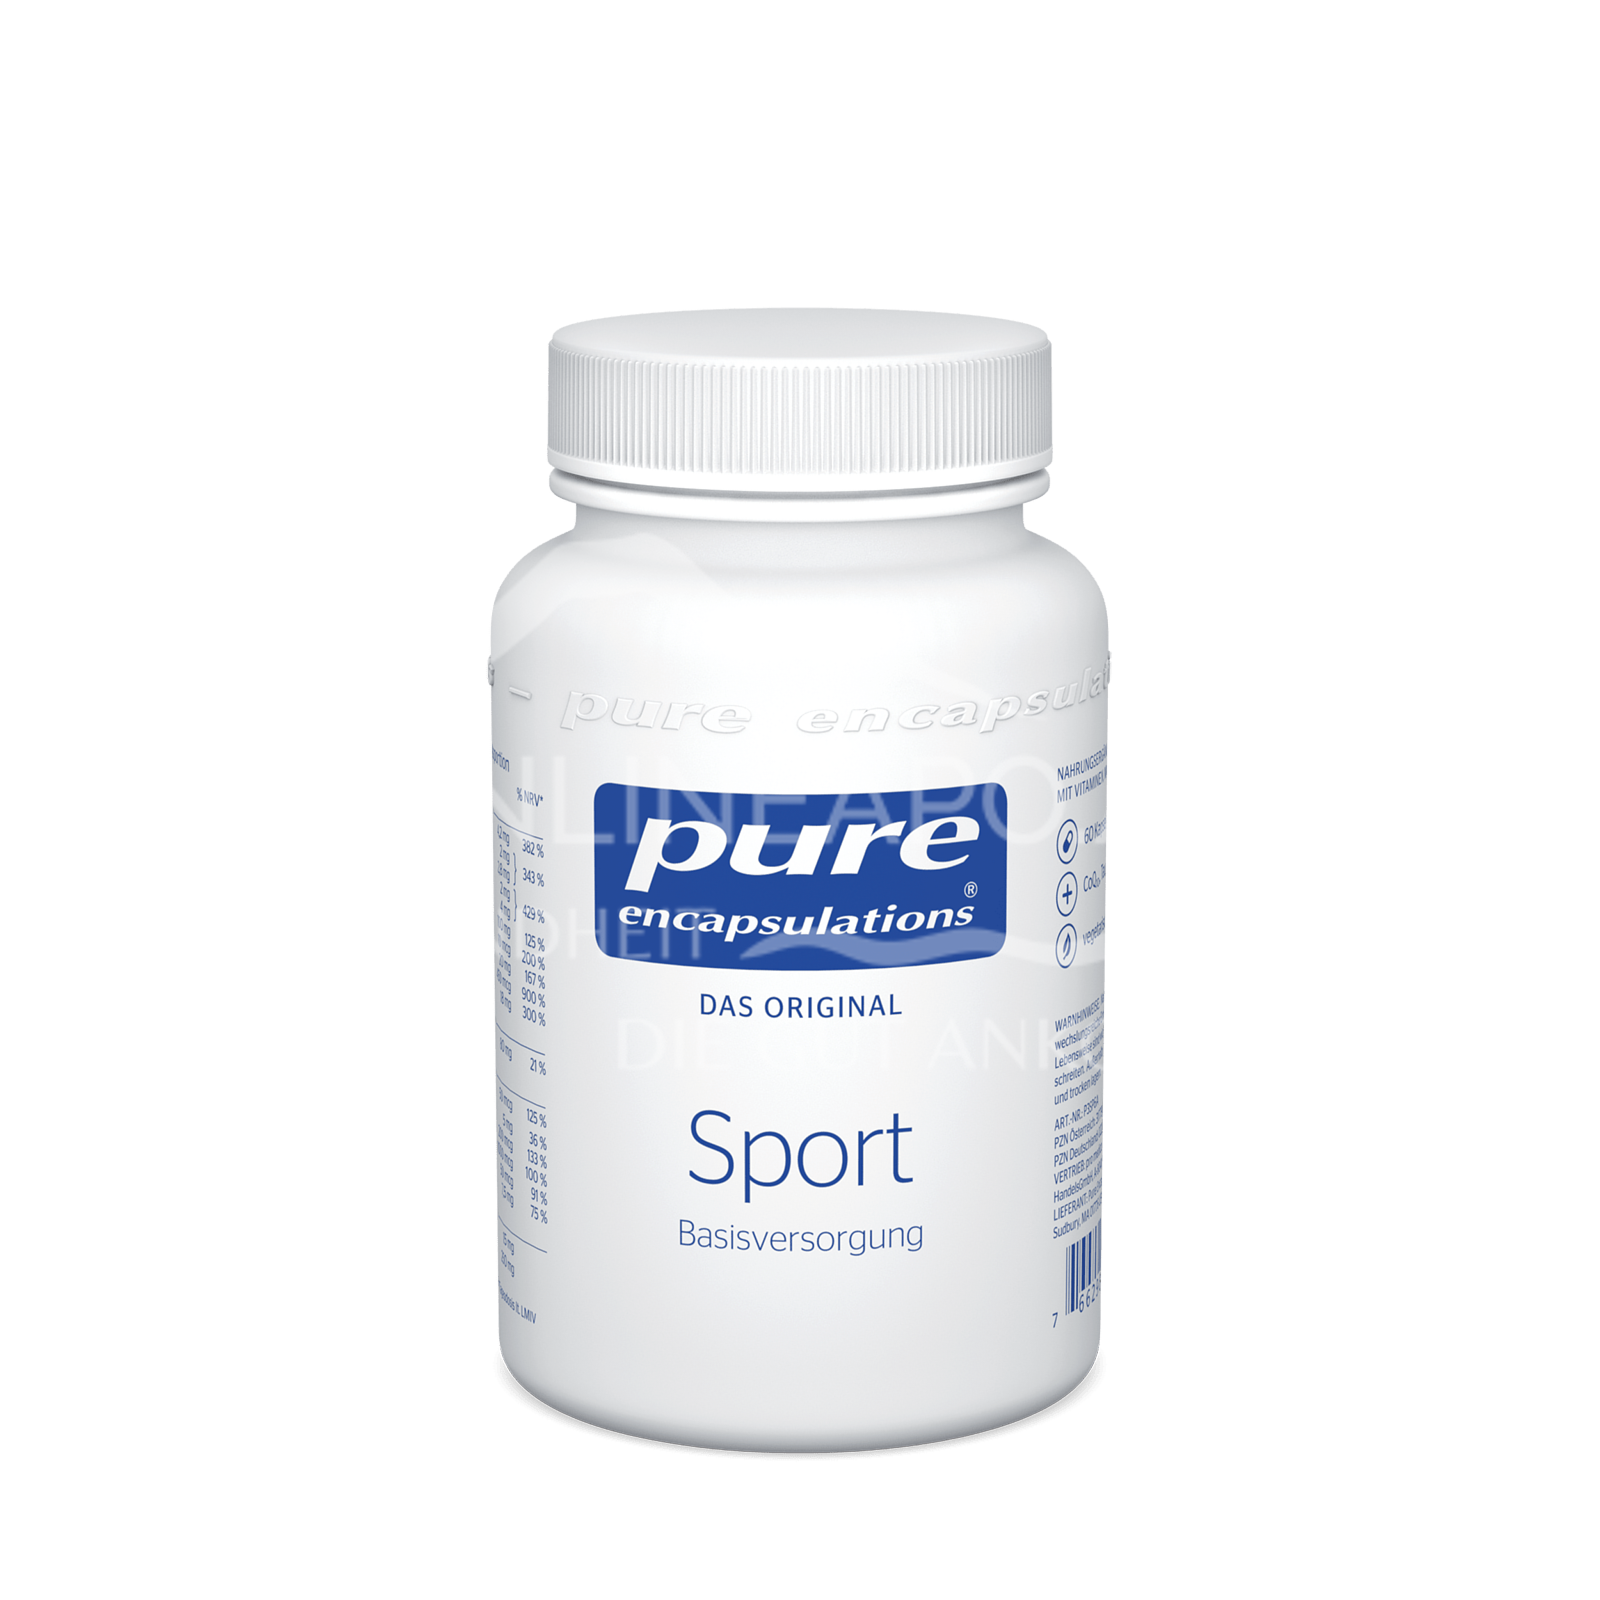 pure encapsulations® Sport